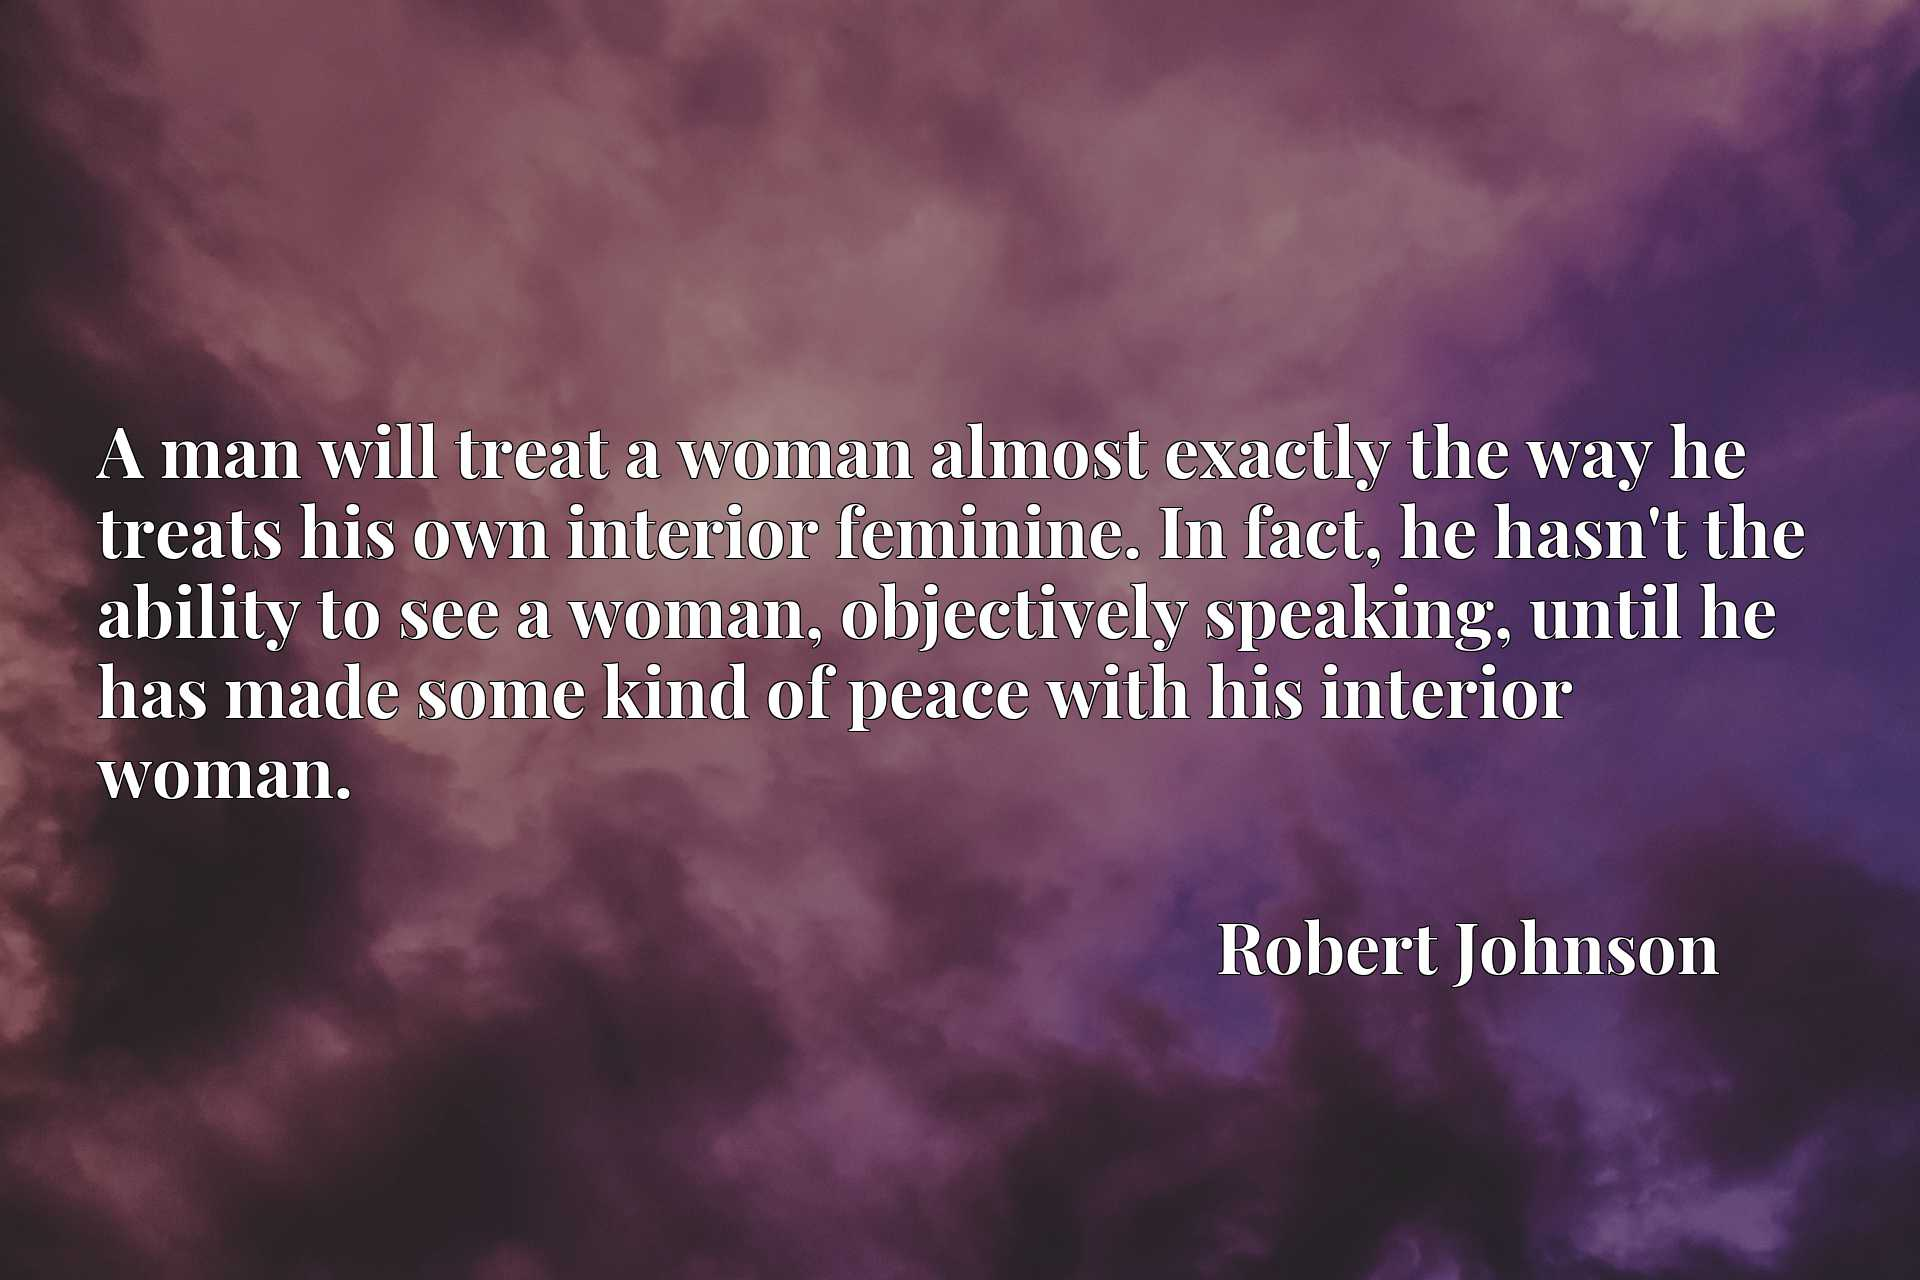 A man will treat a woman almost exactly the way he treats his own interior feminine. In fact, he hasn't the ability to see a woman, objectively speaking, until he has made some kind of peace with his interior woman.